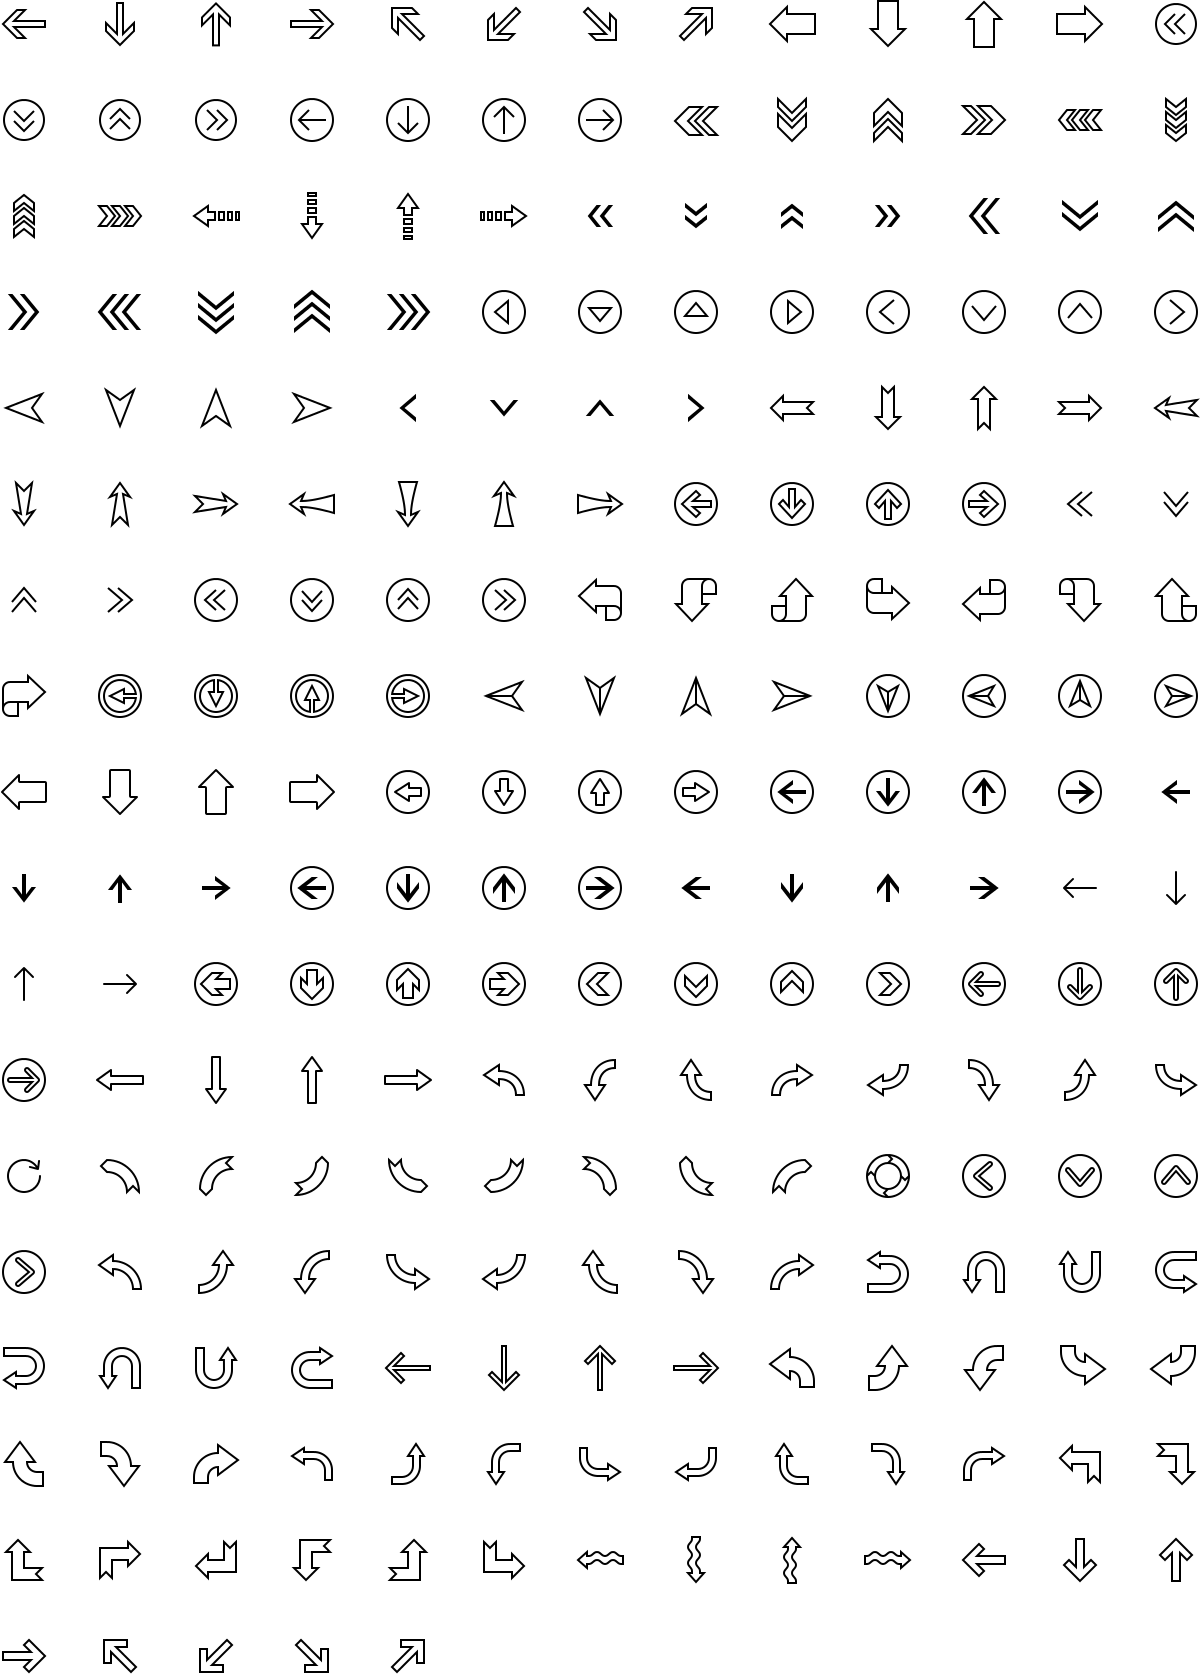 Arrows icons in outline style